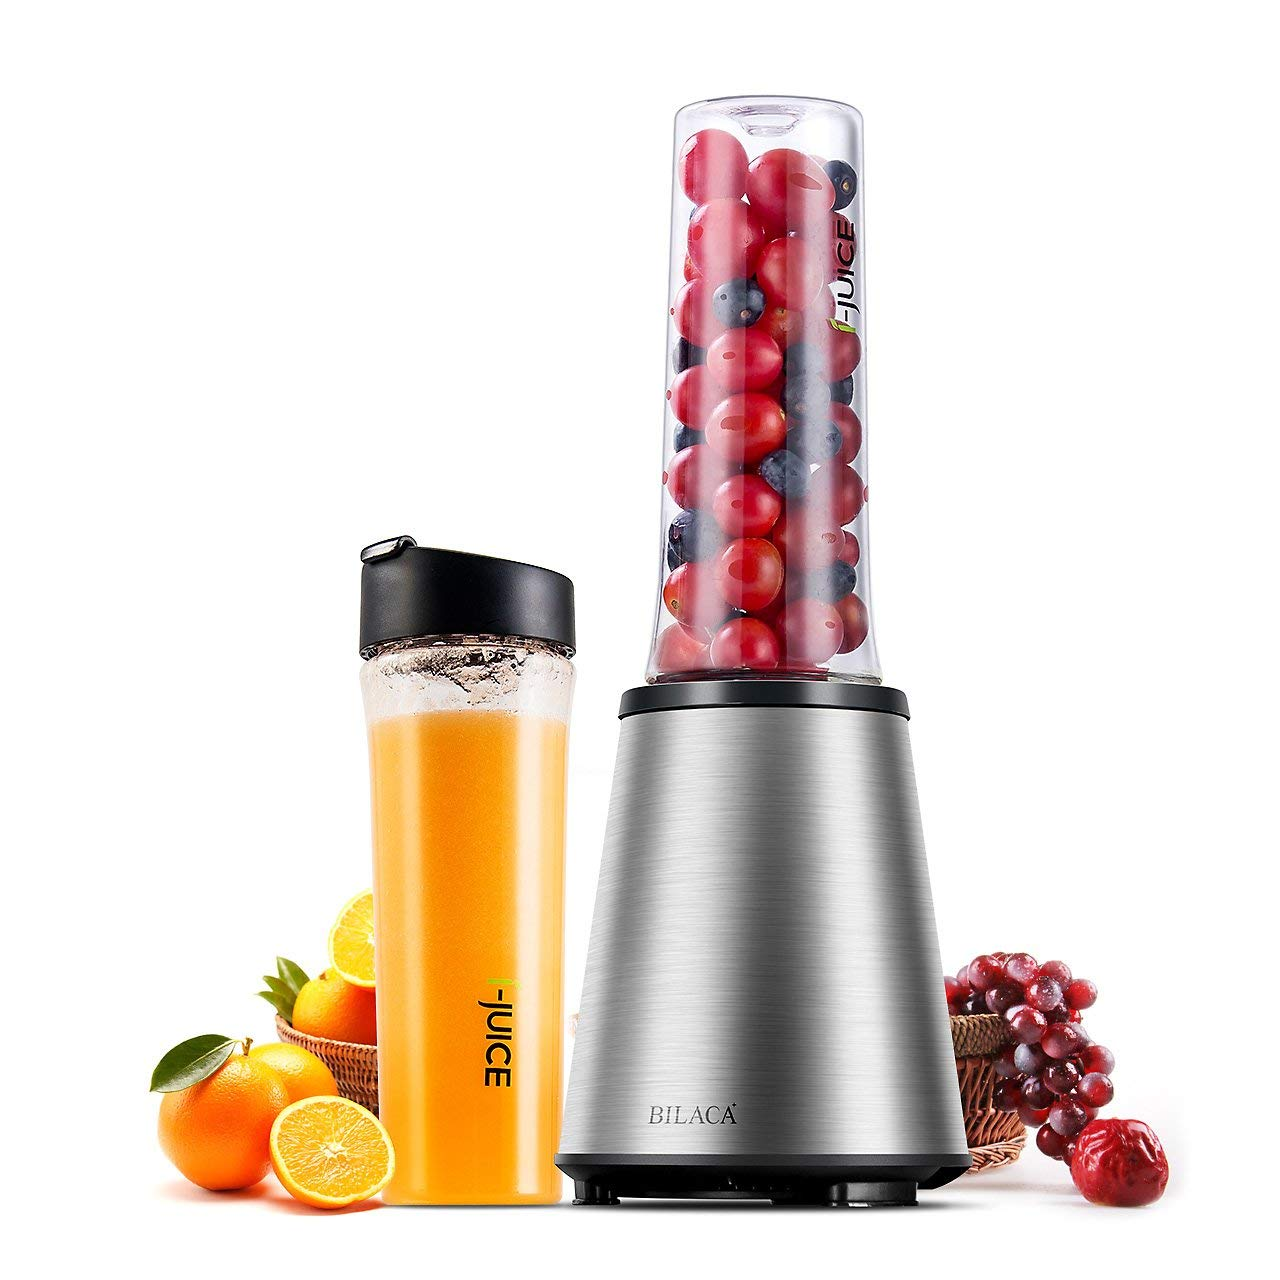 BILACA Smoothie Blender